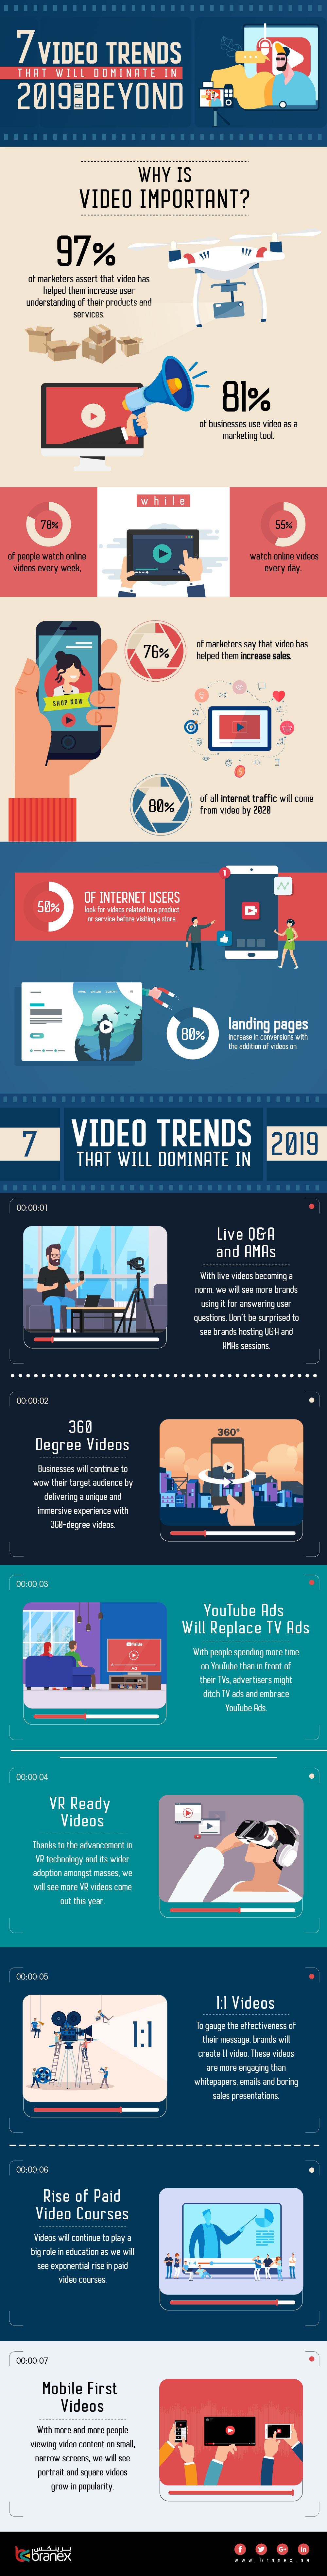 7 Video Trends That Will Dominate In 2019 and Beyond - Infographics